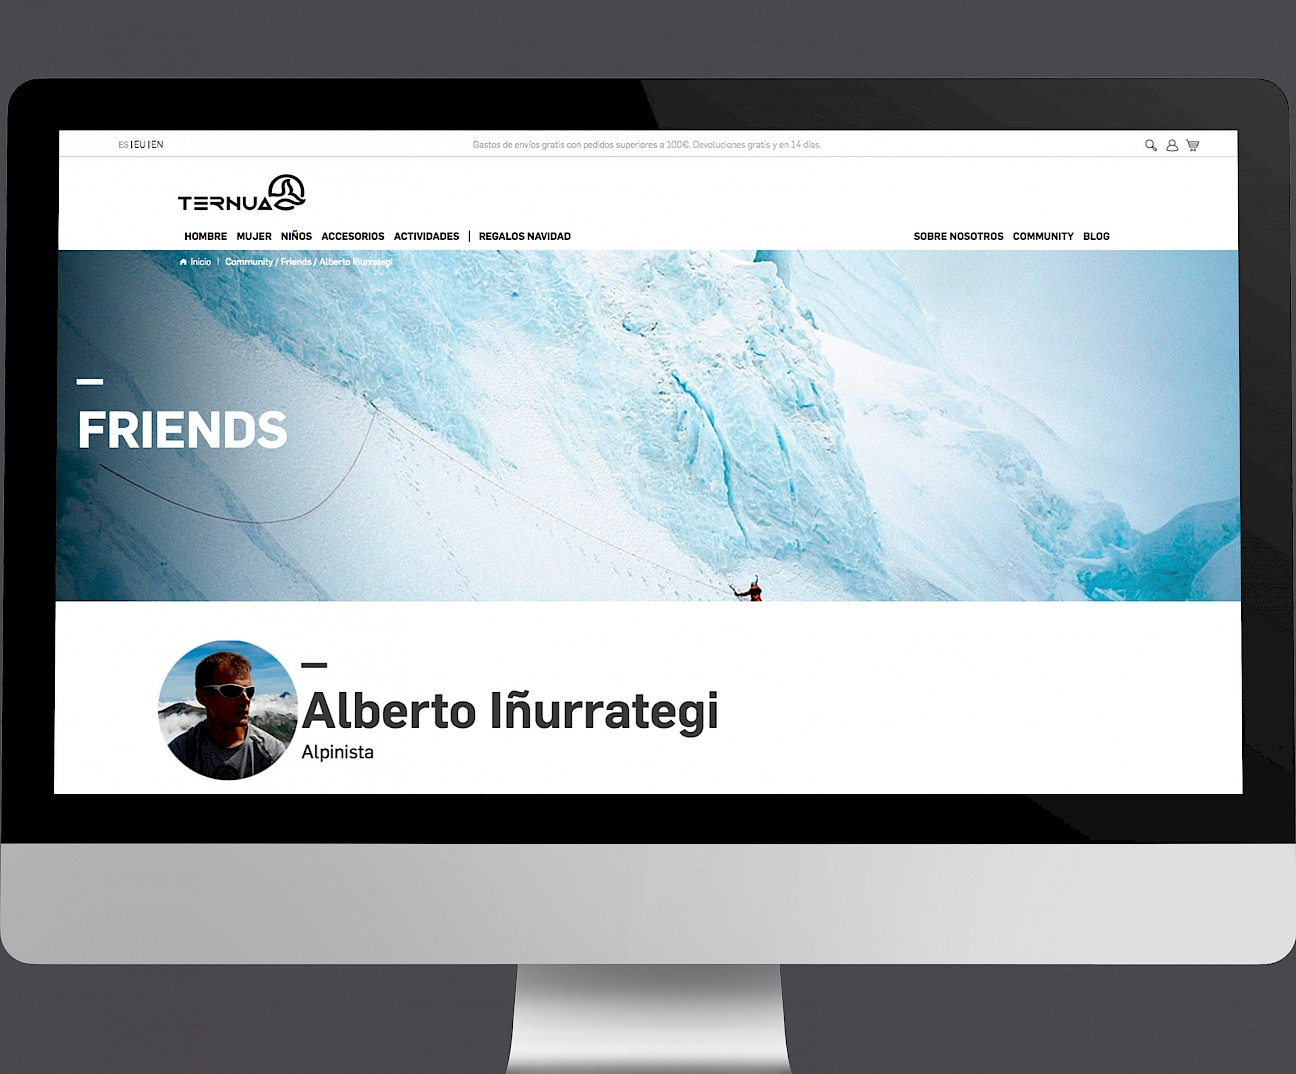 branding website digital wireframe move design ternua 10